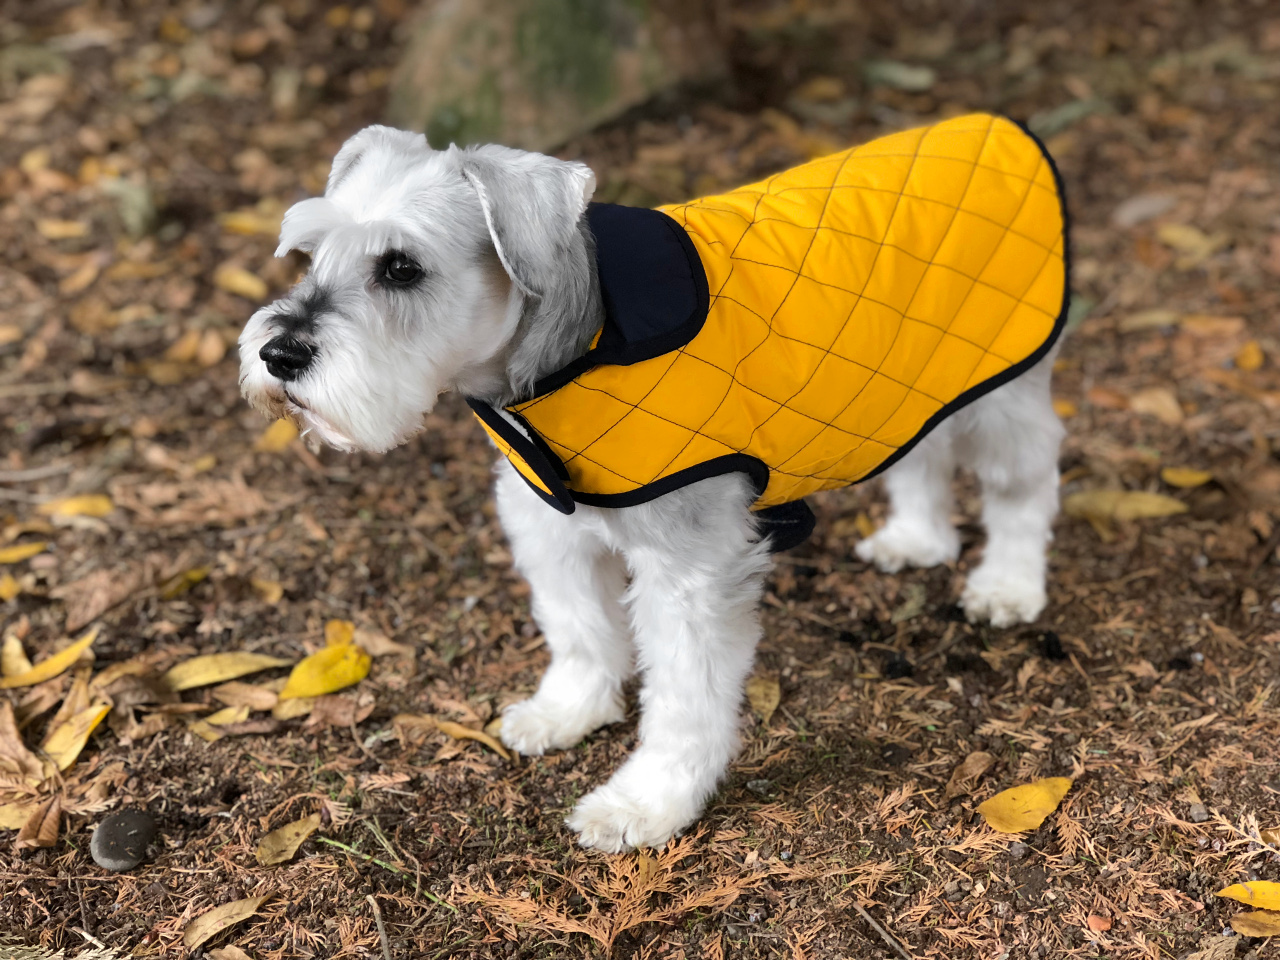 Andean Peaks Water Resistant Dog Coat from Paco & Lucia